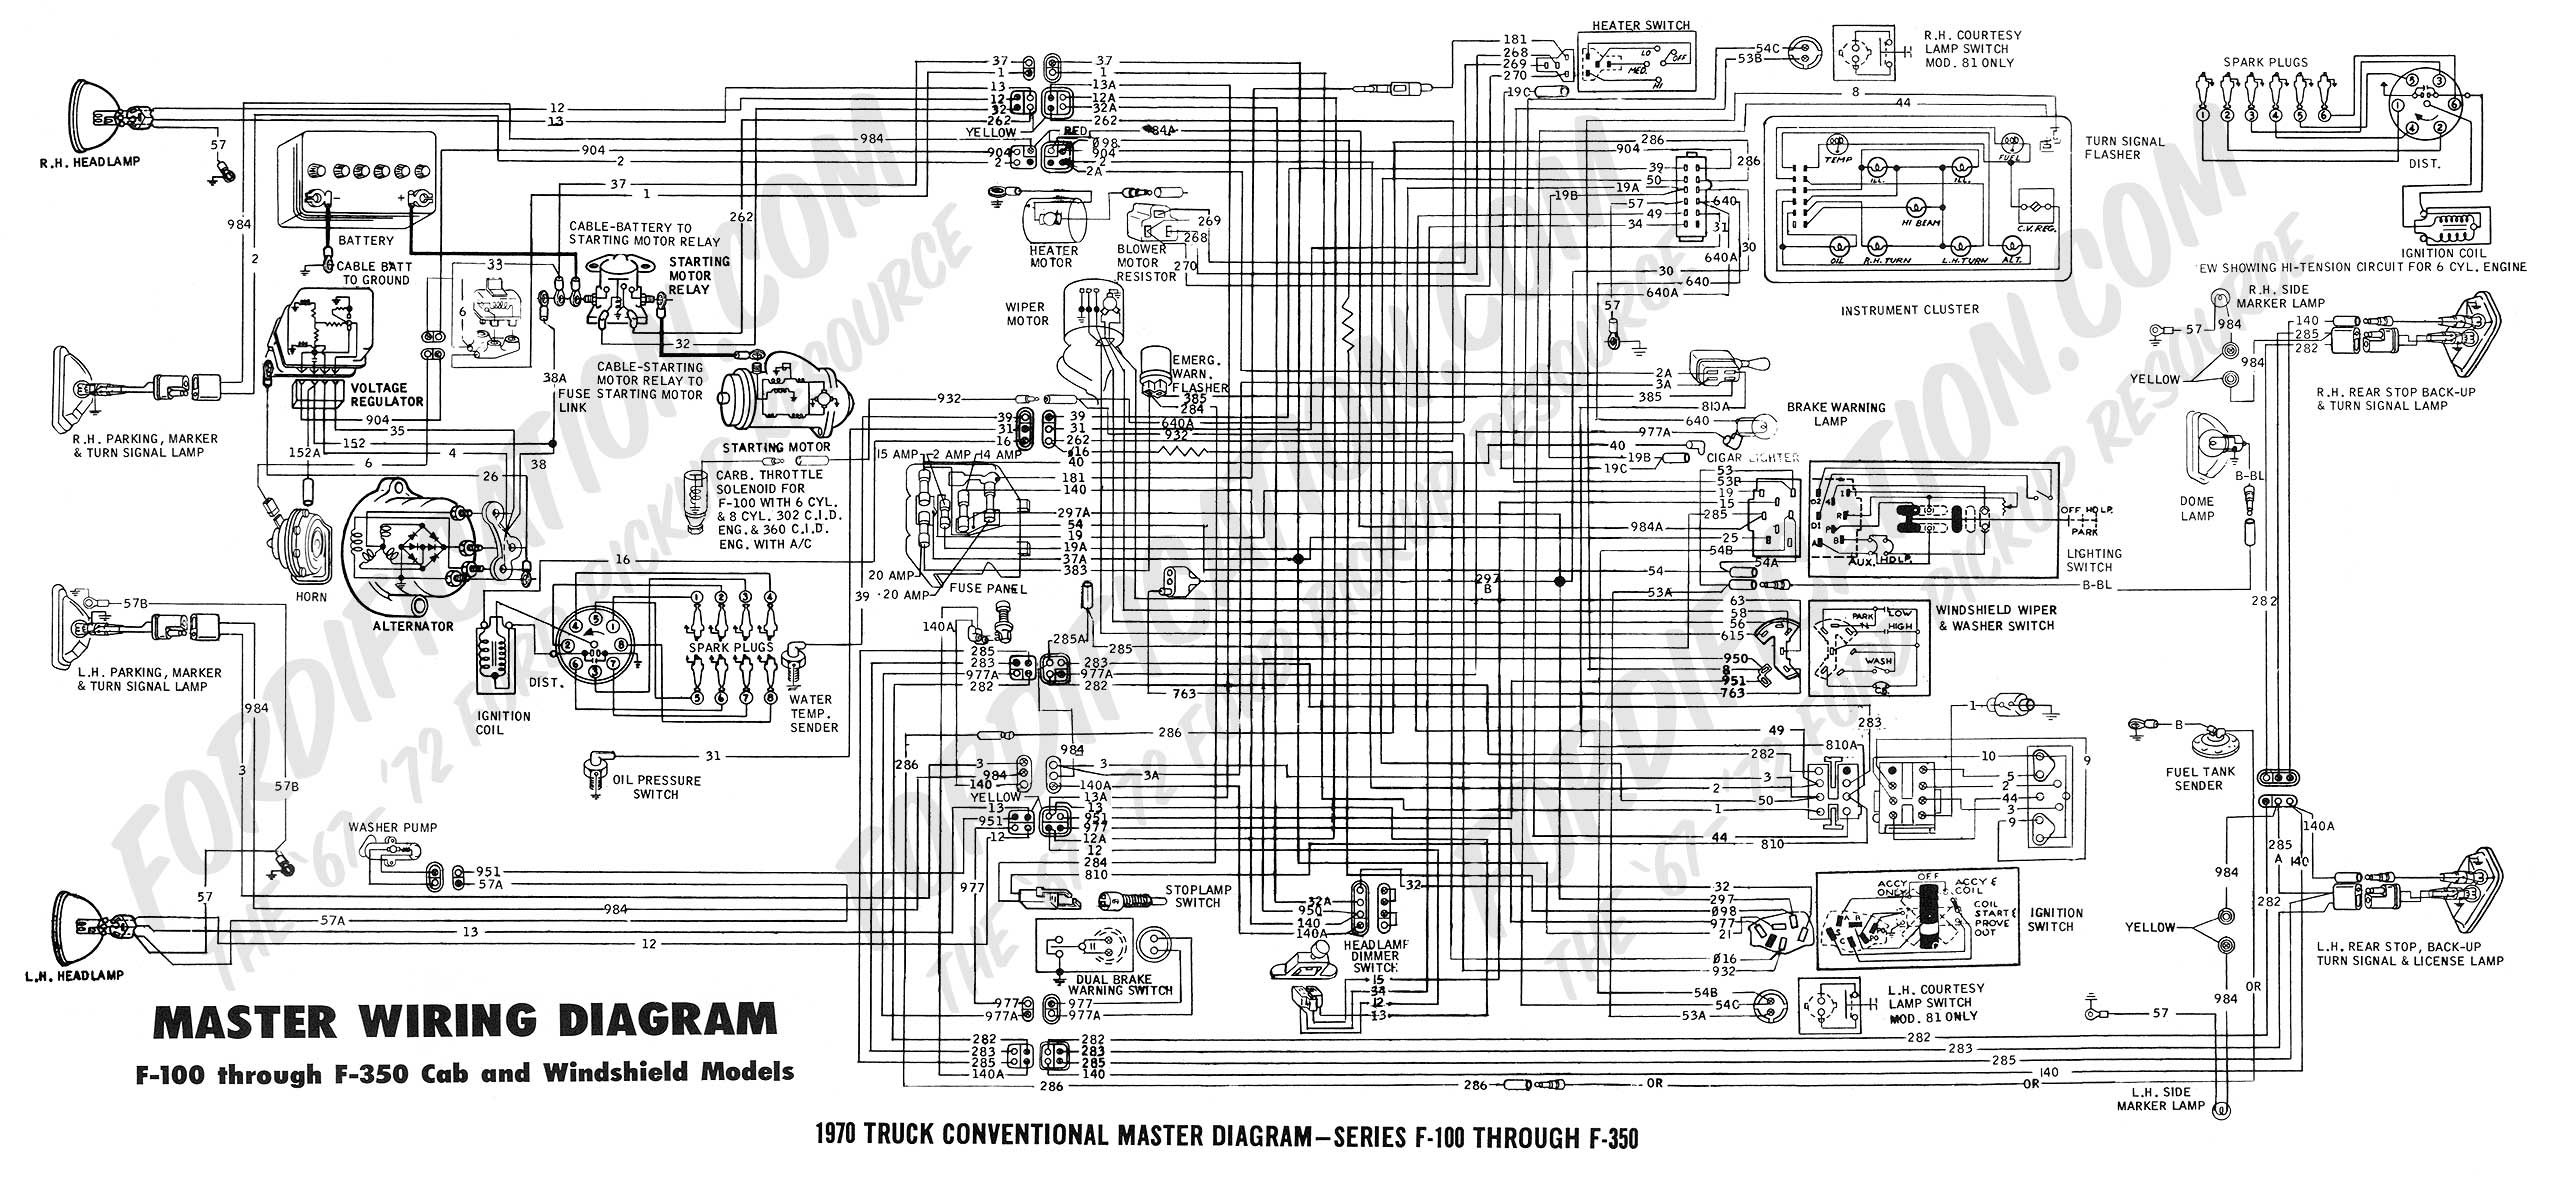 [SCHEMATICS_4CA]  3ACE Ford F 250 Trailer Wiring Harness Diagram | Wiring Library | 2000 Ford F 250 Wiring Harness |  | Wiring Library